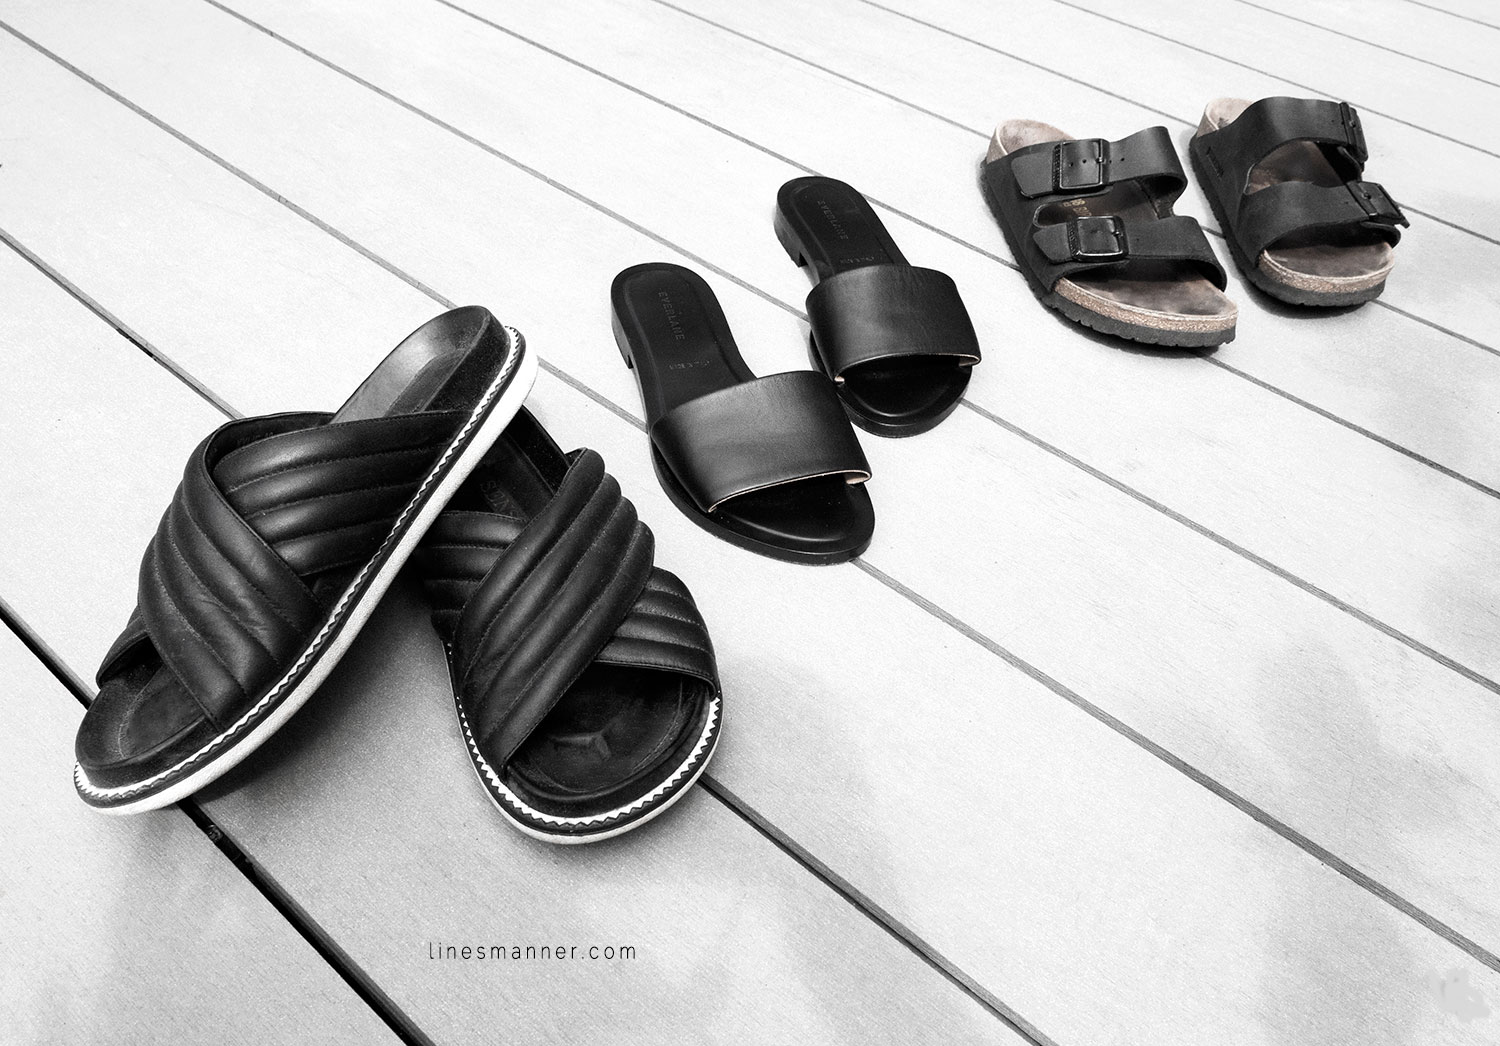 Lines-Manner-Summer-Shoes-Slides-Black-Leather-Minimal-Off_Duty-Senso_Everlane-Birkenstock-Essentials-Situation-6